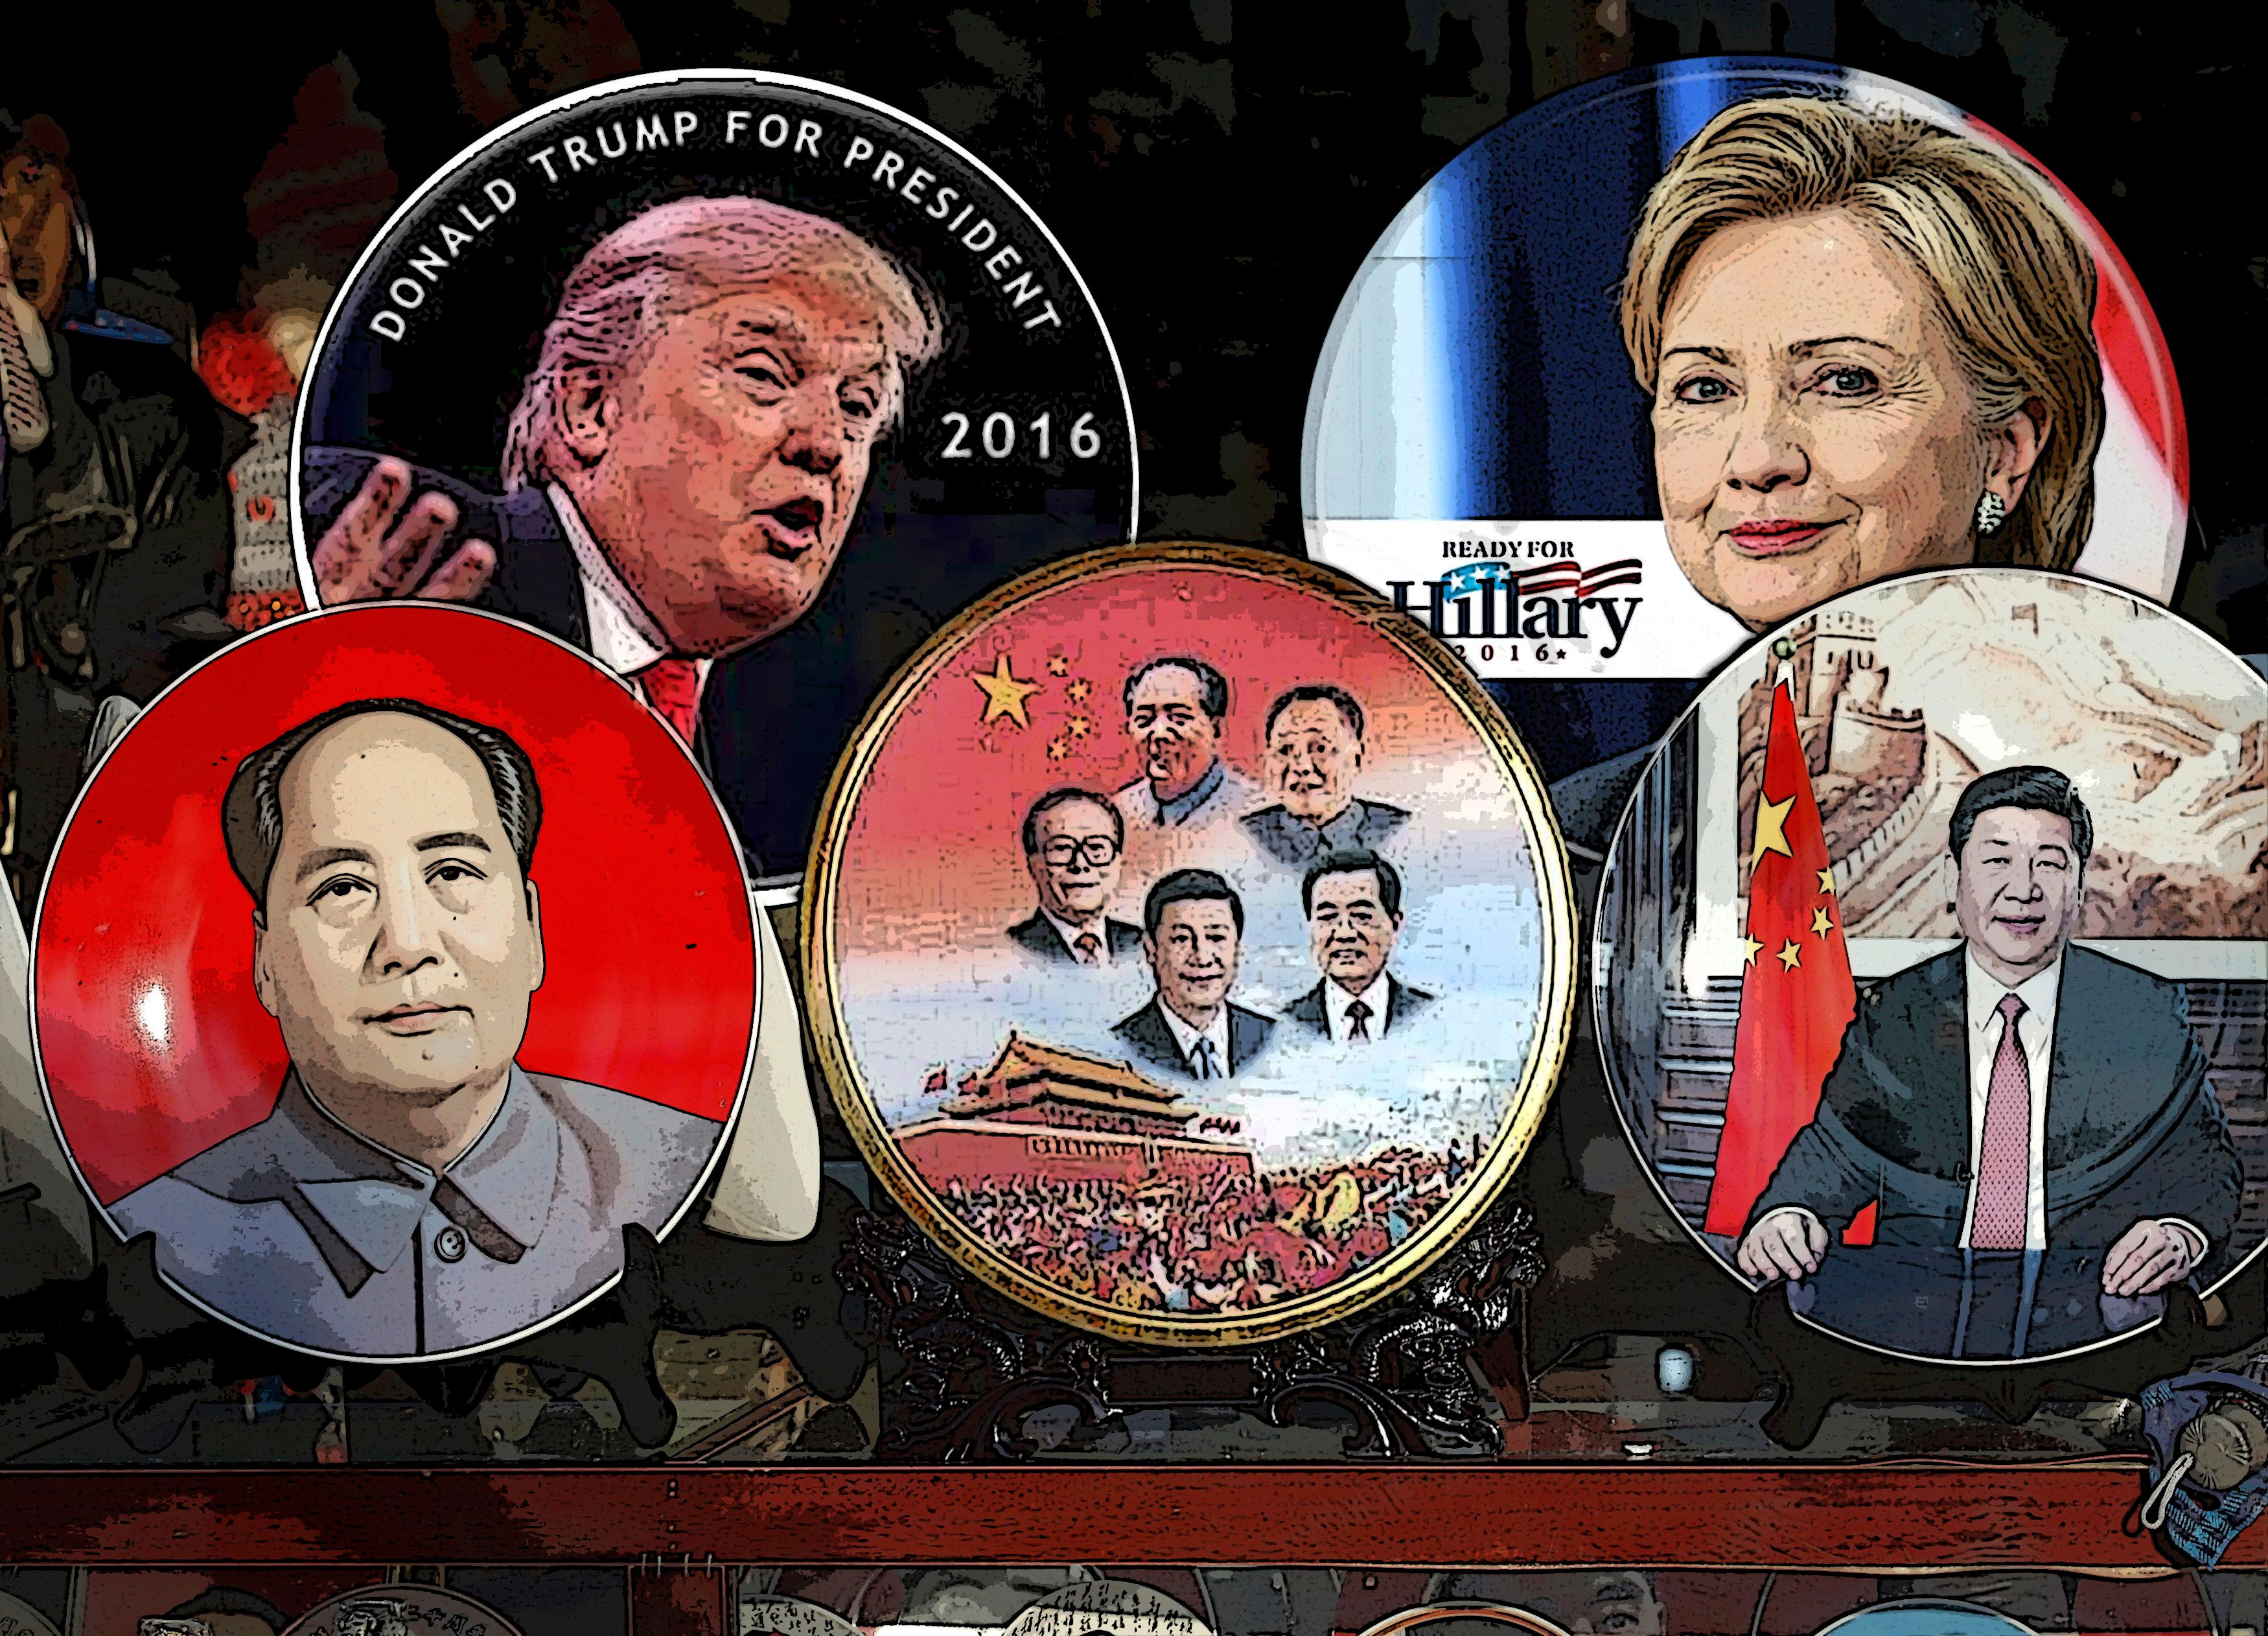 Plates and pins of Chinese leaders and US hopefuls